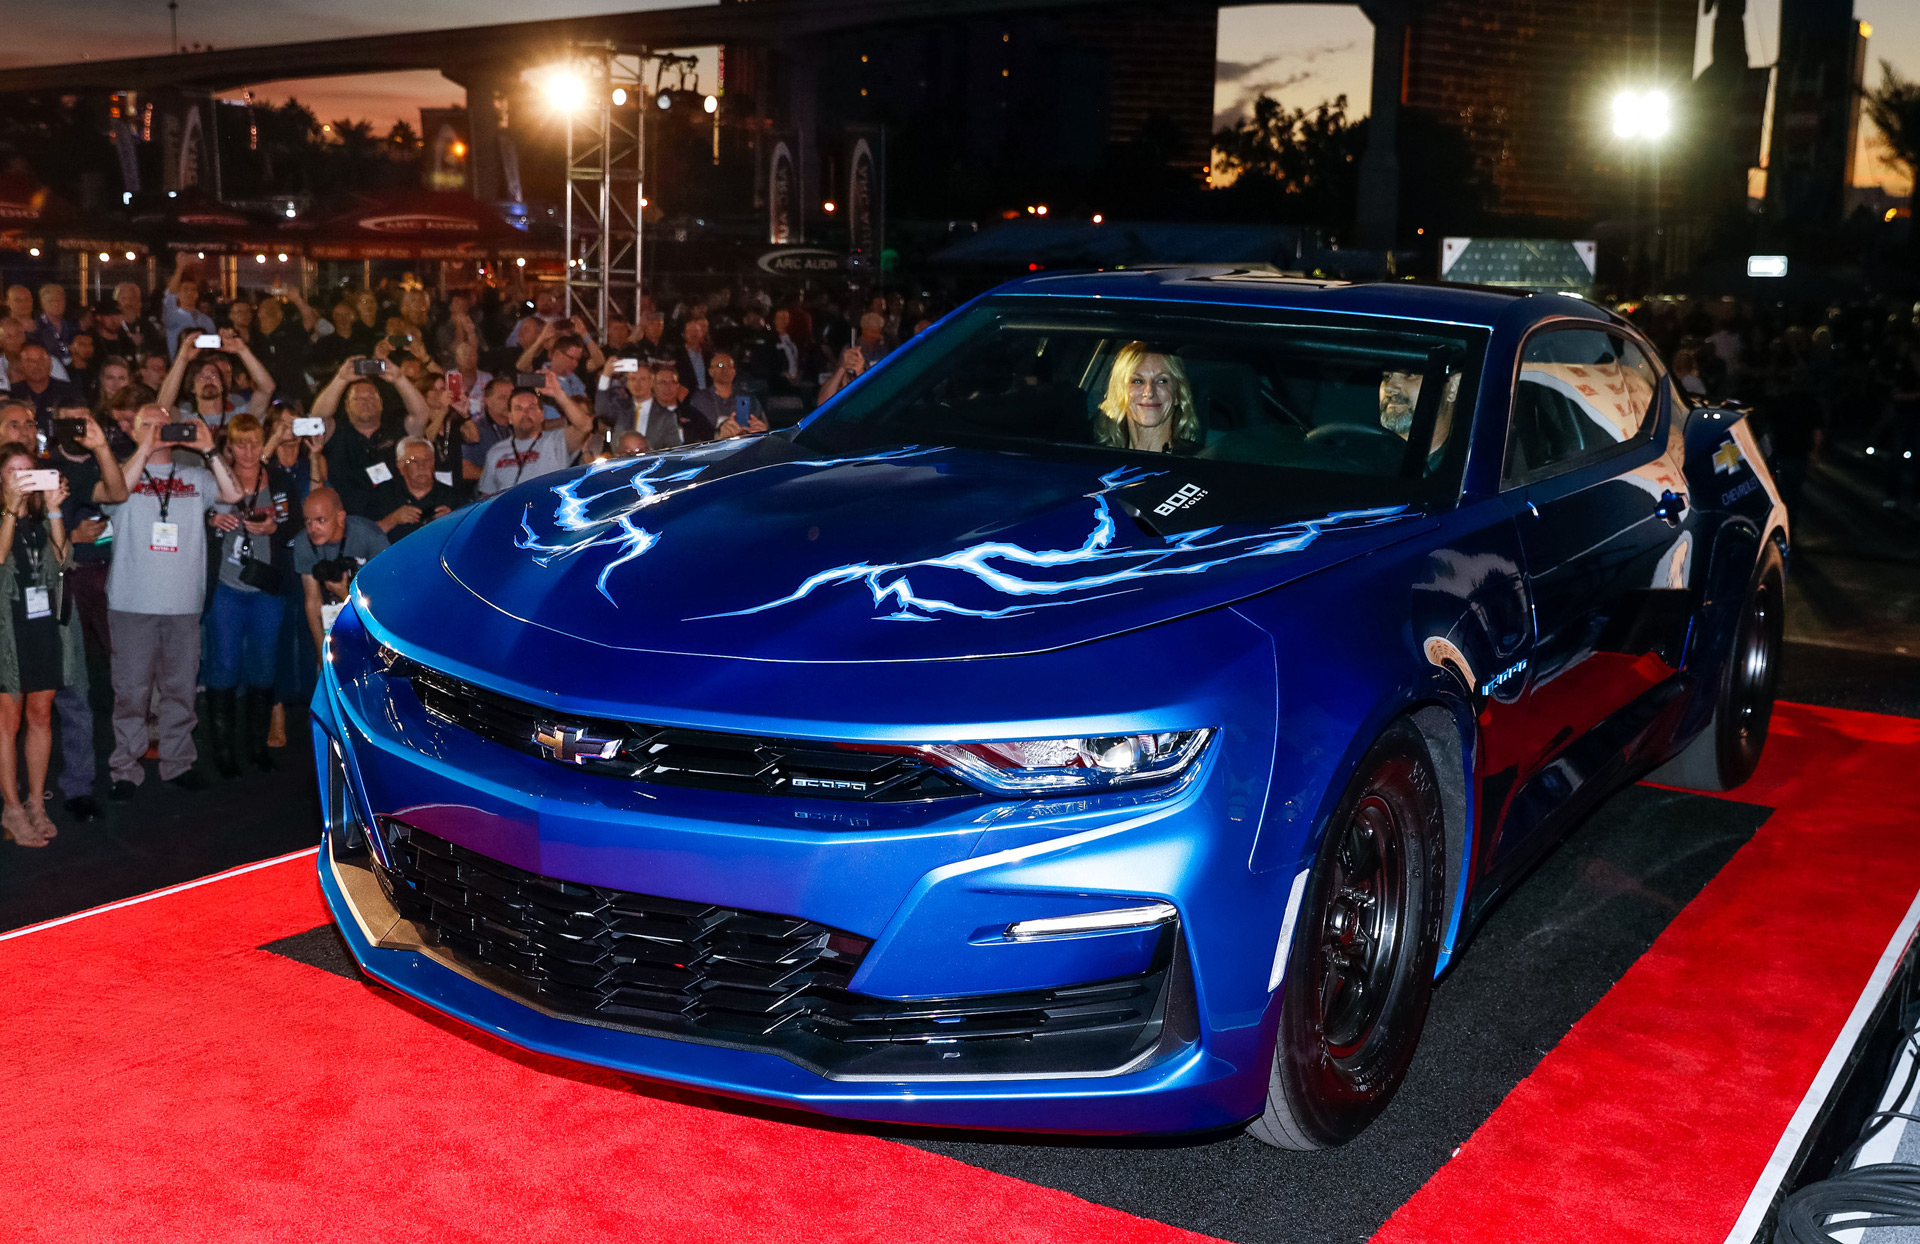 Chevy Unveils Electric Camaro Drag Racer Estimates 9 Second Quarter Mile